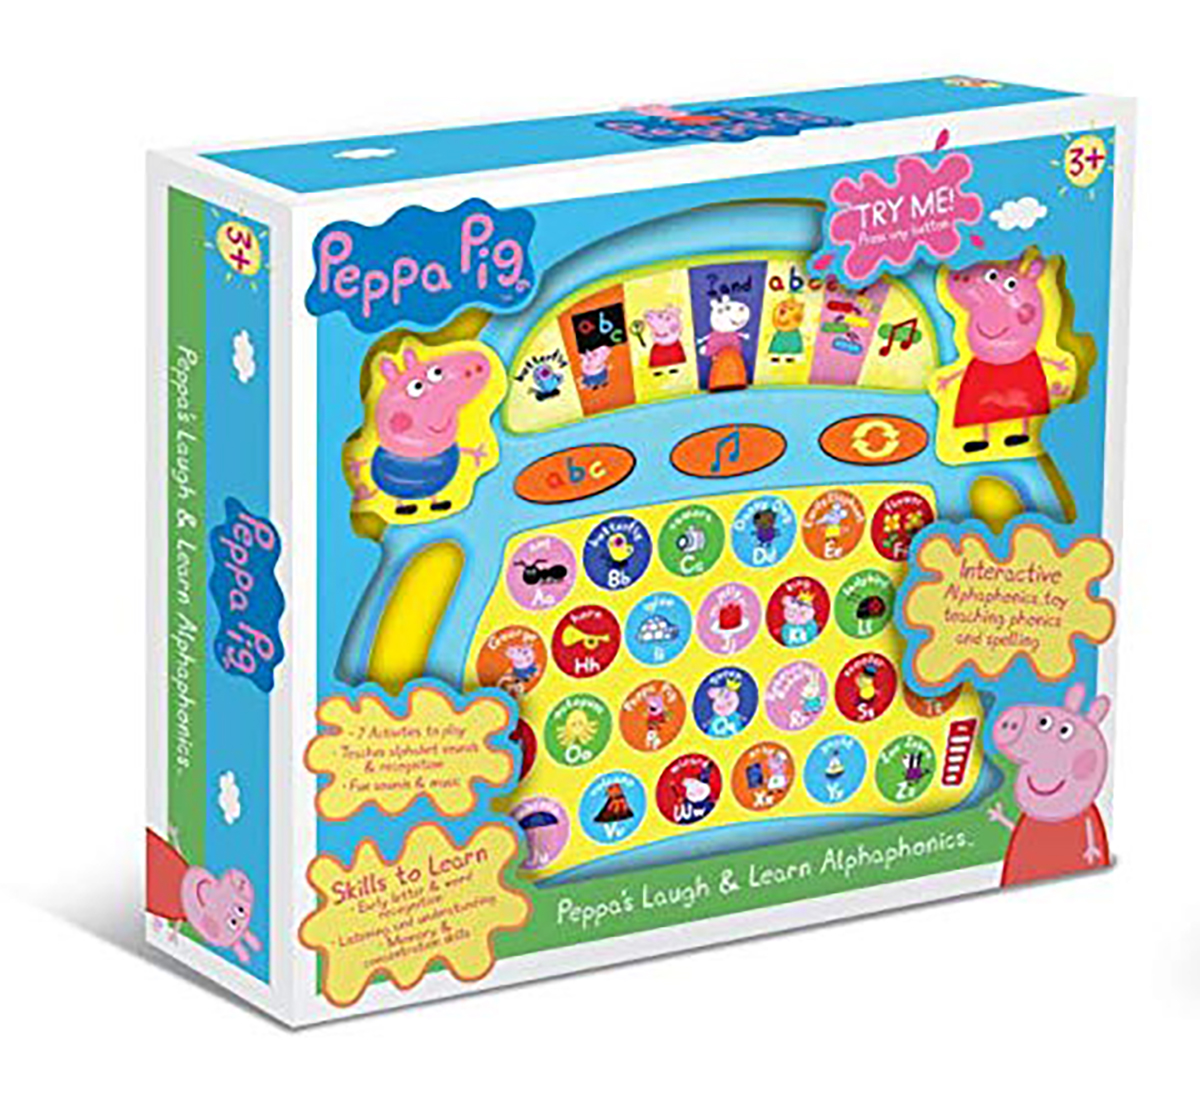 Peppa Pig | Peppa Pig  Laugh And Learn  Alphaphonics Learning Toys for Kids age 3Y+